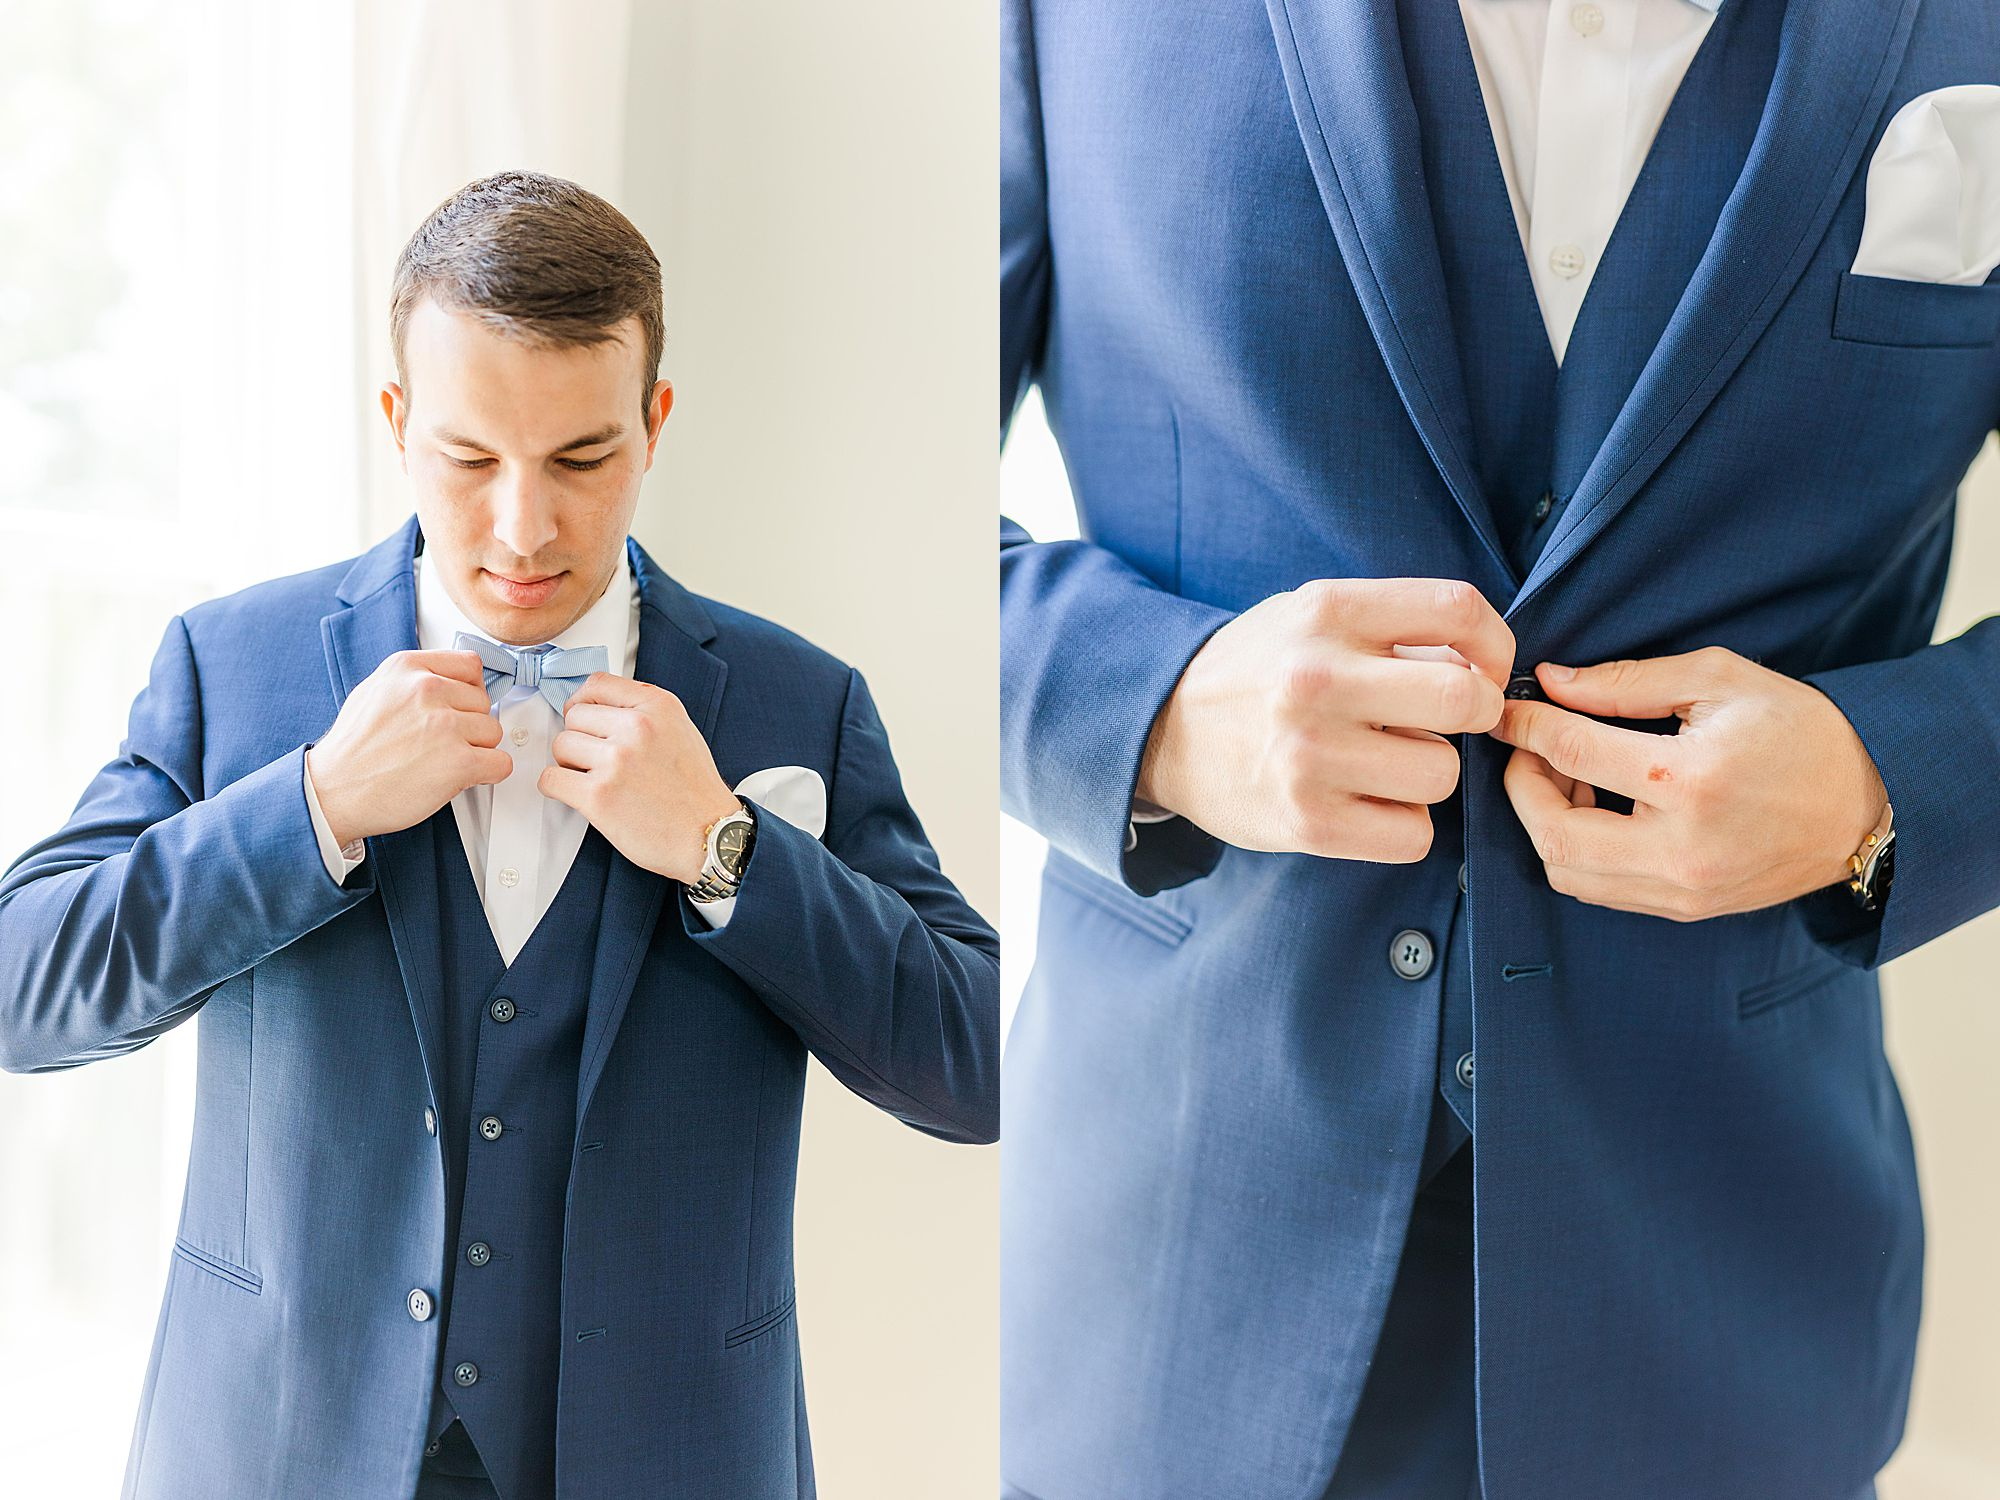 groom getting dressed for wedding day